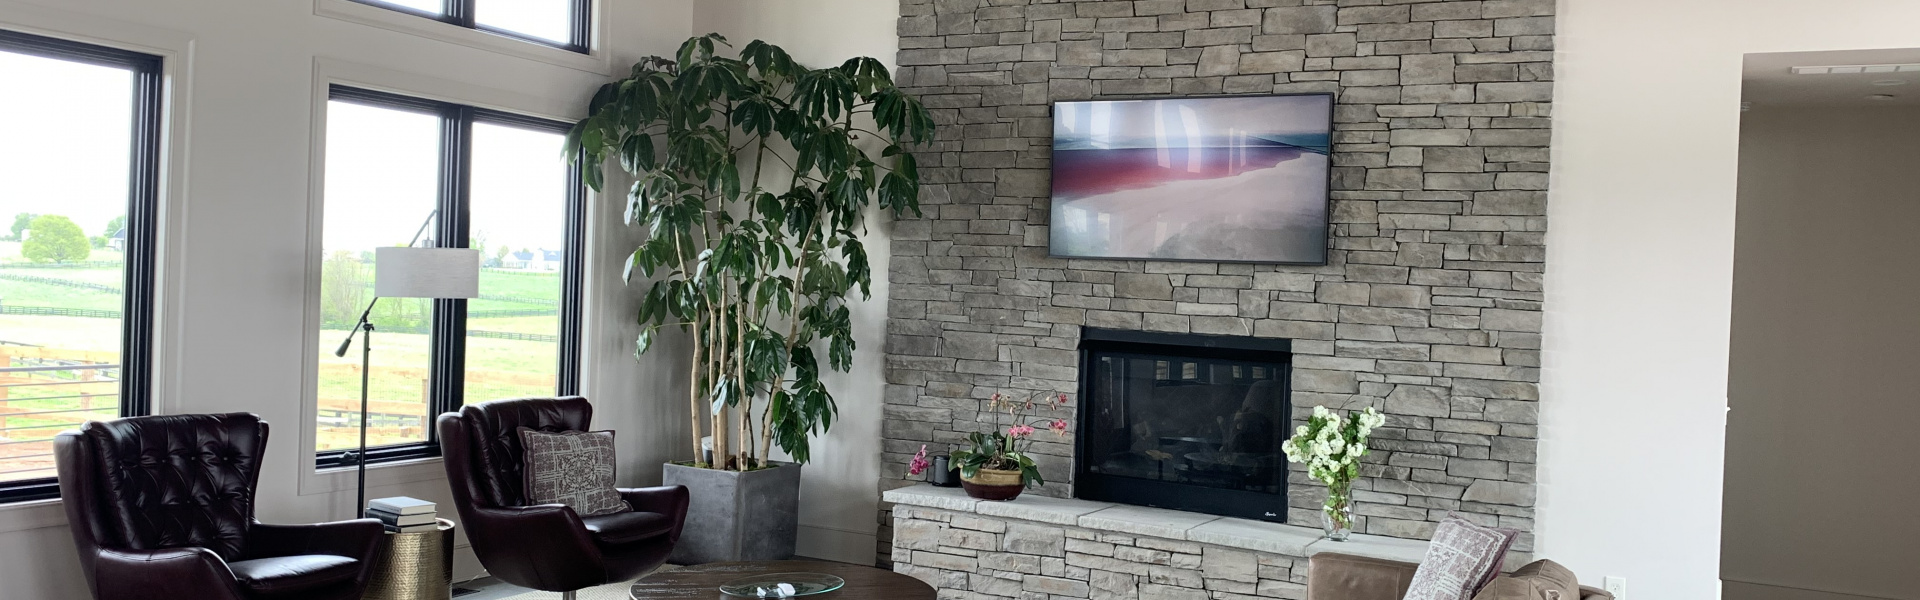 Smart home installation by Barney Miller's for Lexington